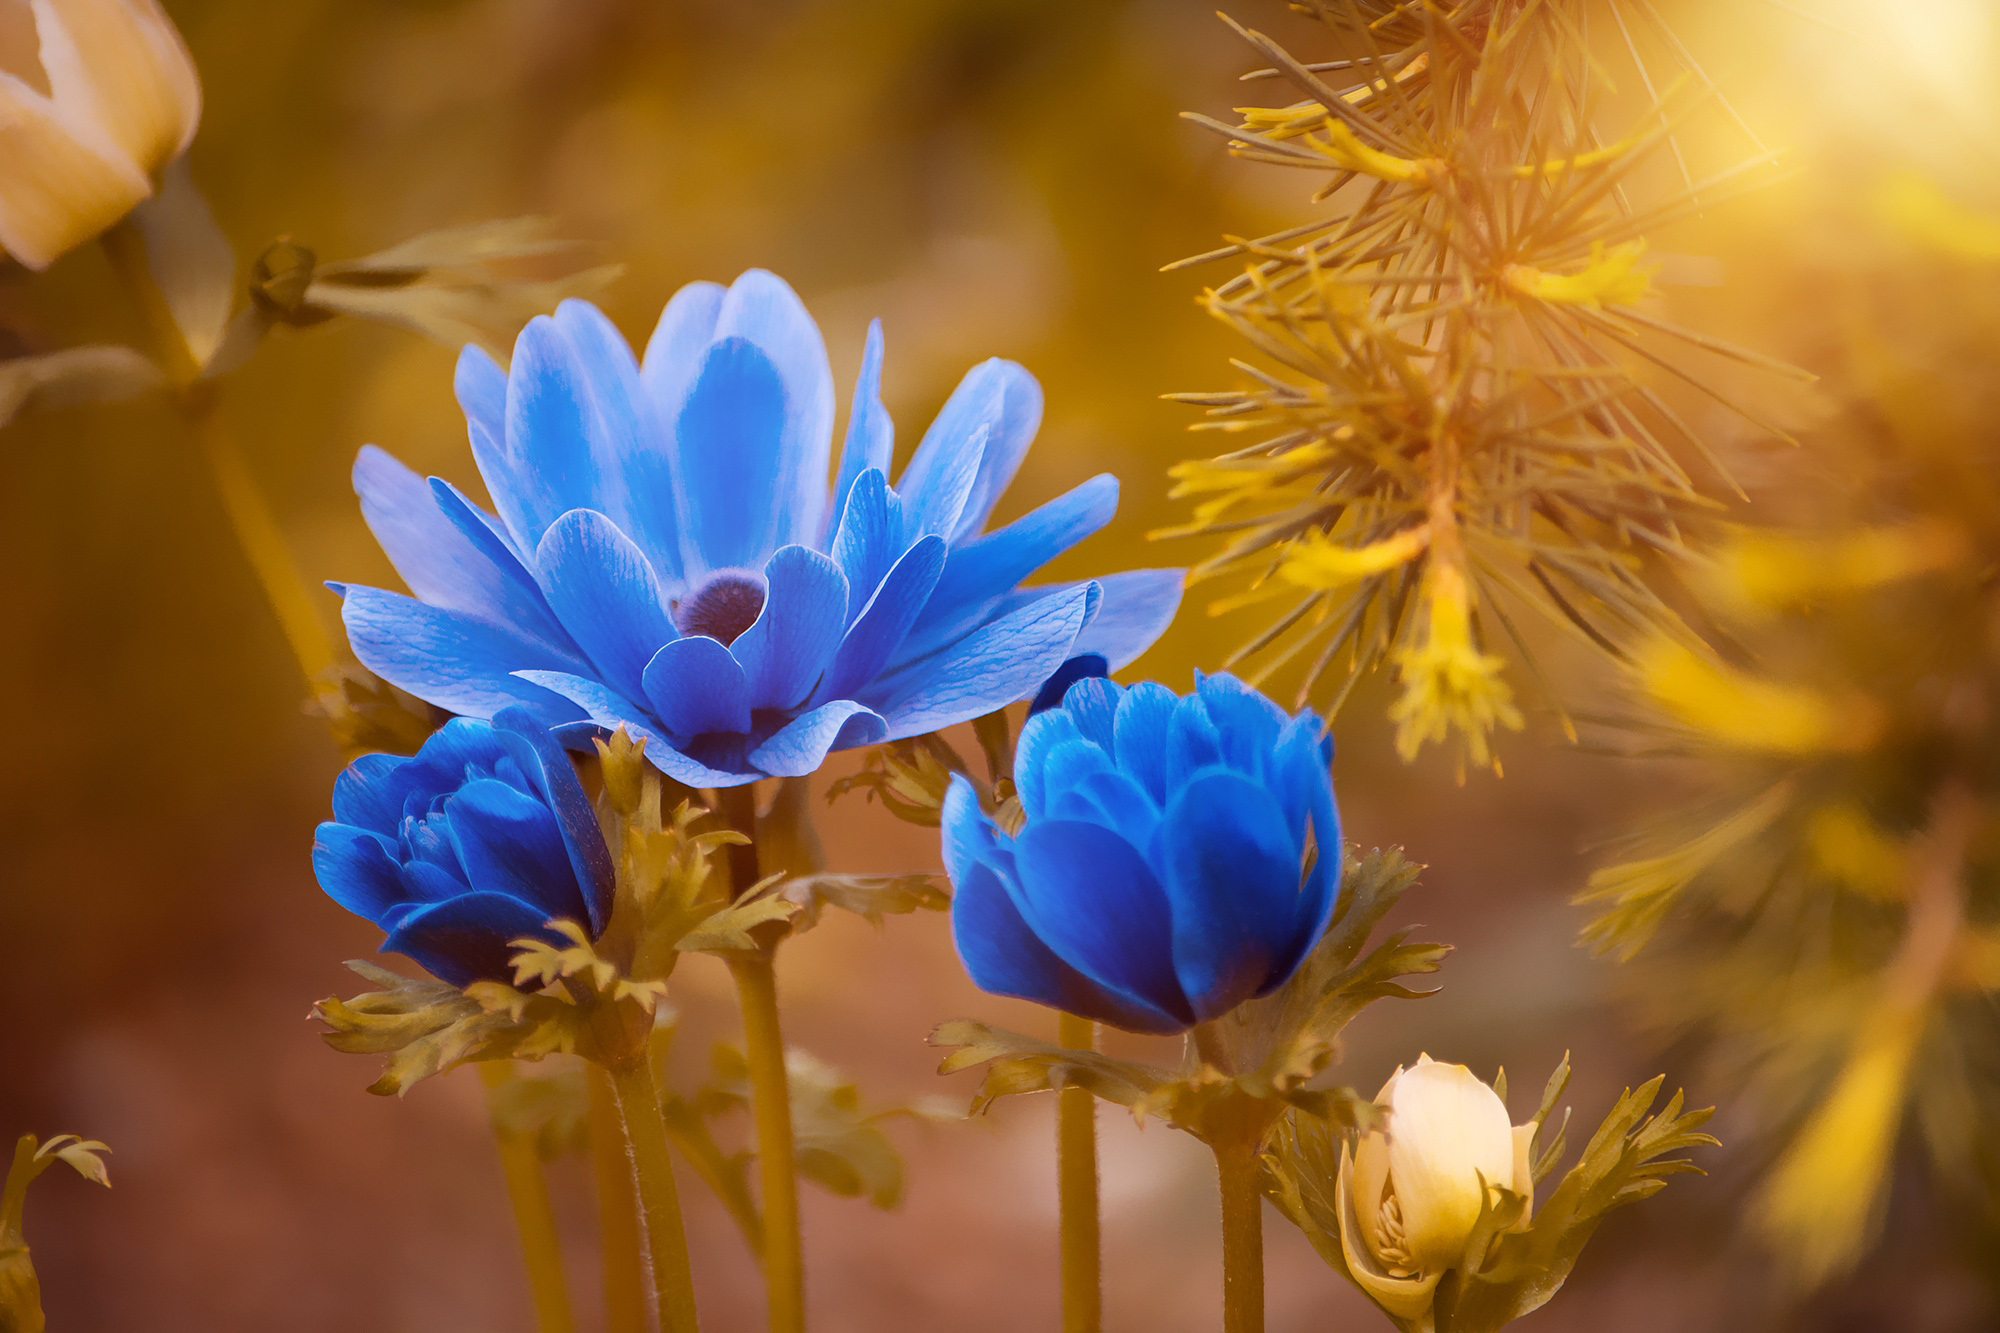 Flower, blue, nature, bloom, petals